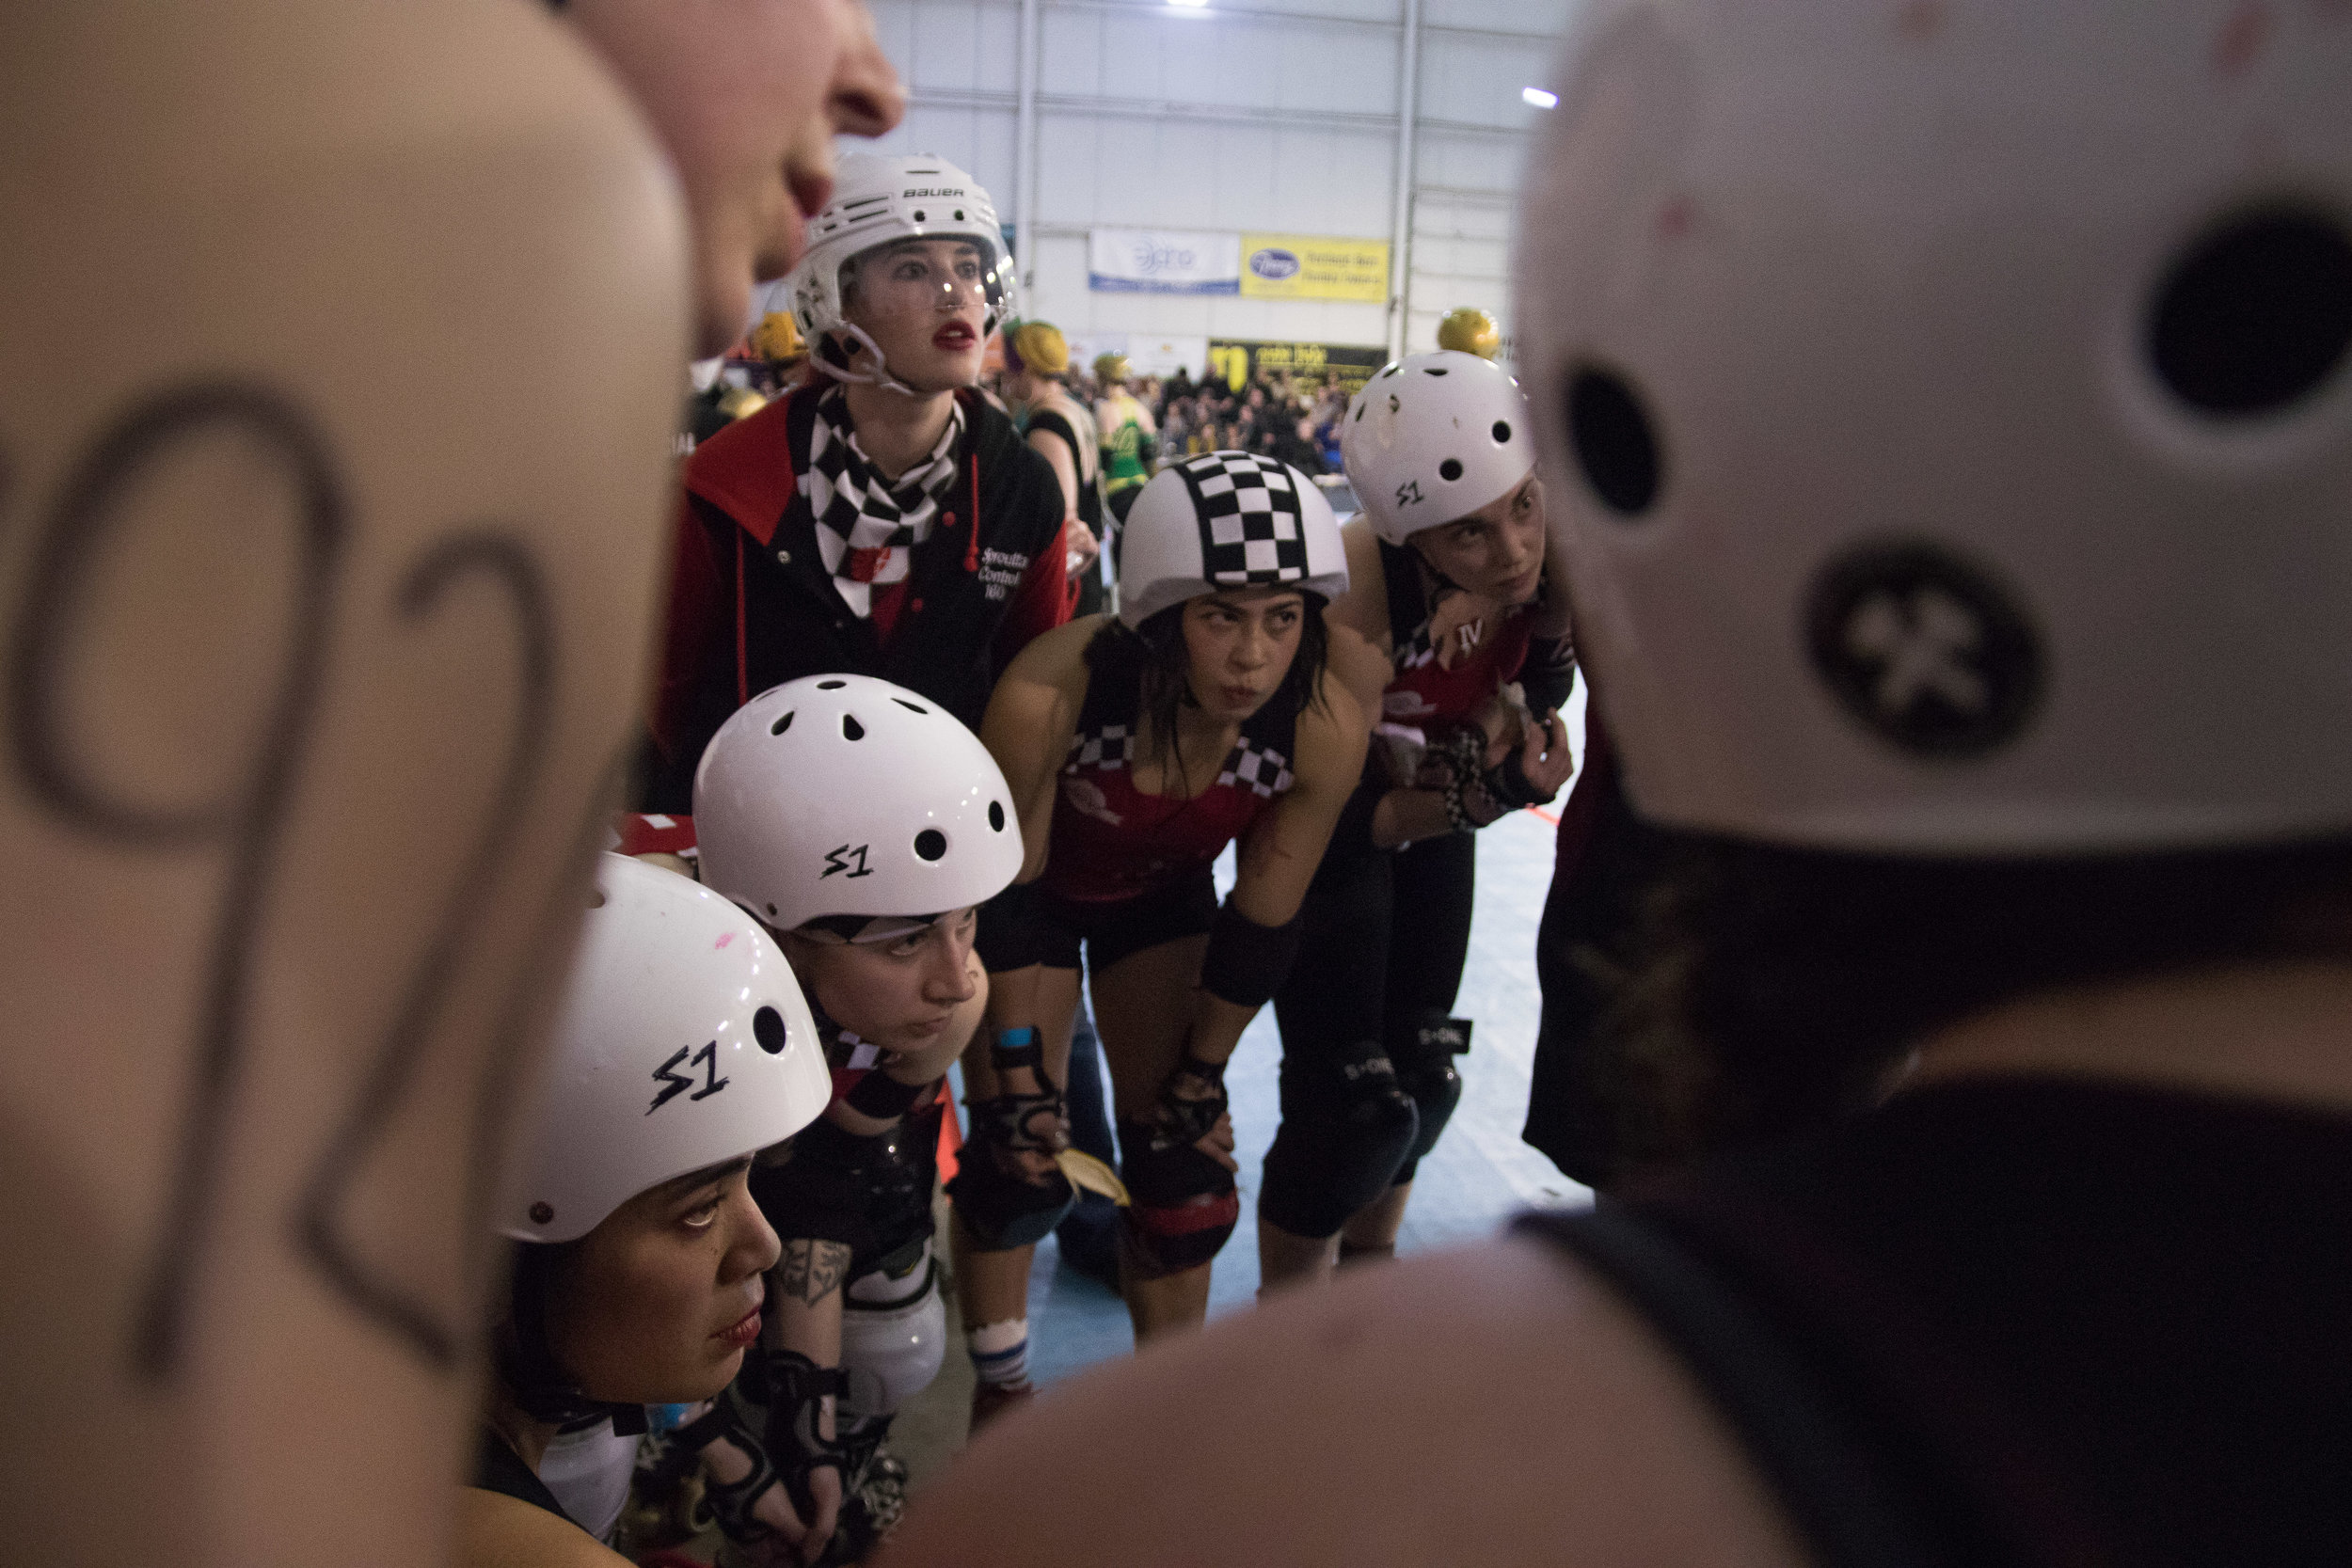 Break Neck Betties huddle at halftime during a game against the High Rollers on April 8, 2017.When not competing, practicing, or cross-training together, the Betties are a close-knit crew. They choose to spend much of their free time together socializing and supporting each other in non-derby activities.